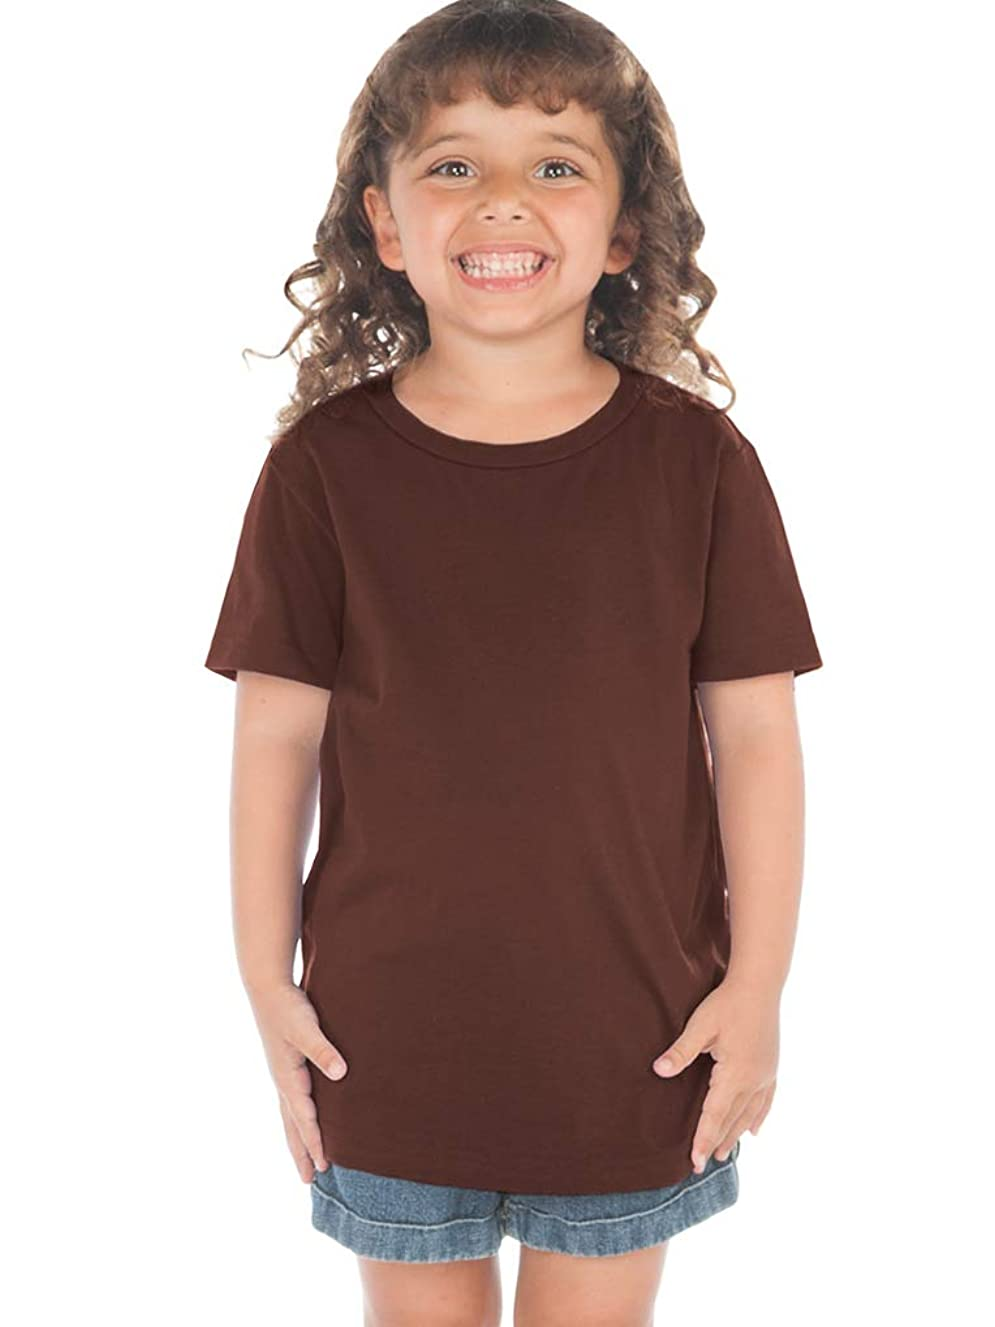 Kavio! Toddlers Crew Neck Short Sleeve Tee (Same TJP0494)